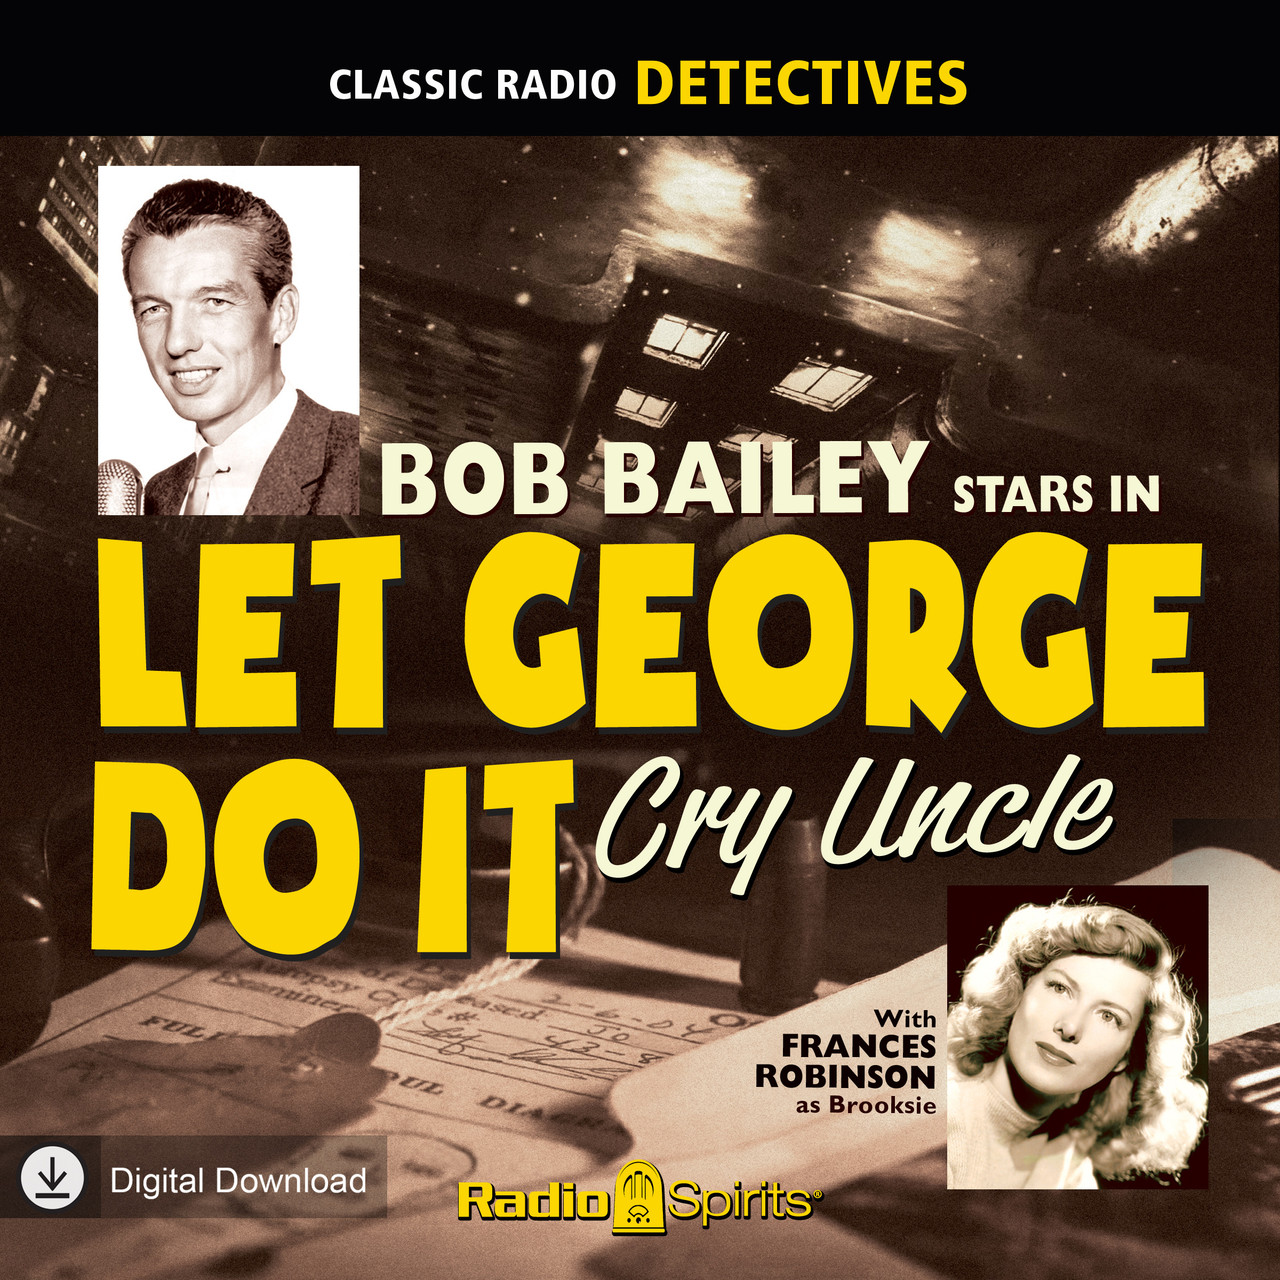 Let George Do It: Cry Uncle (MP3 Download)